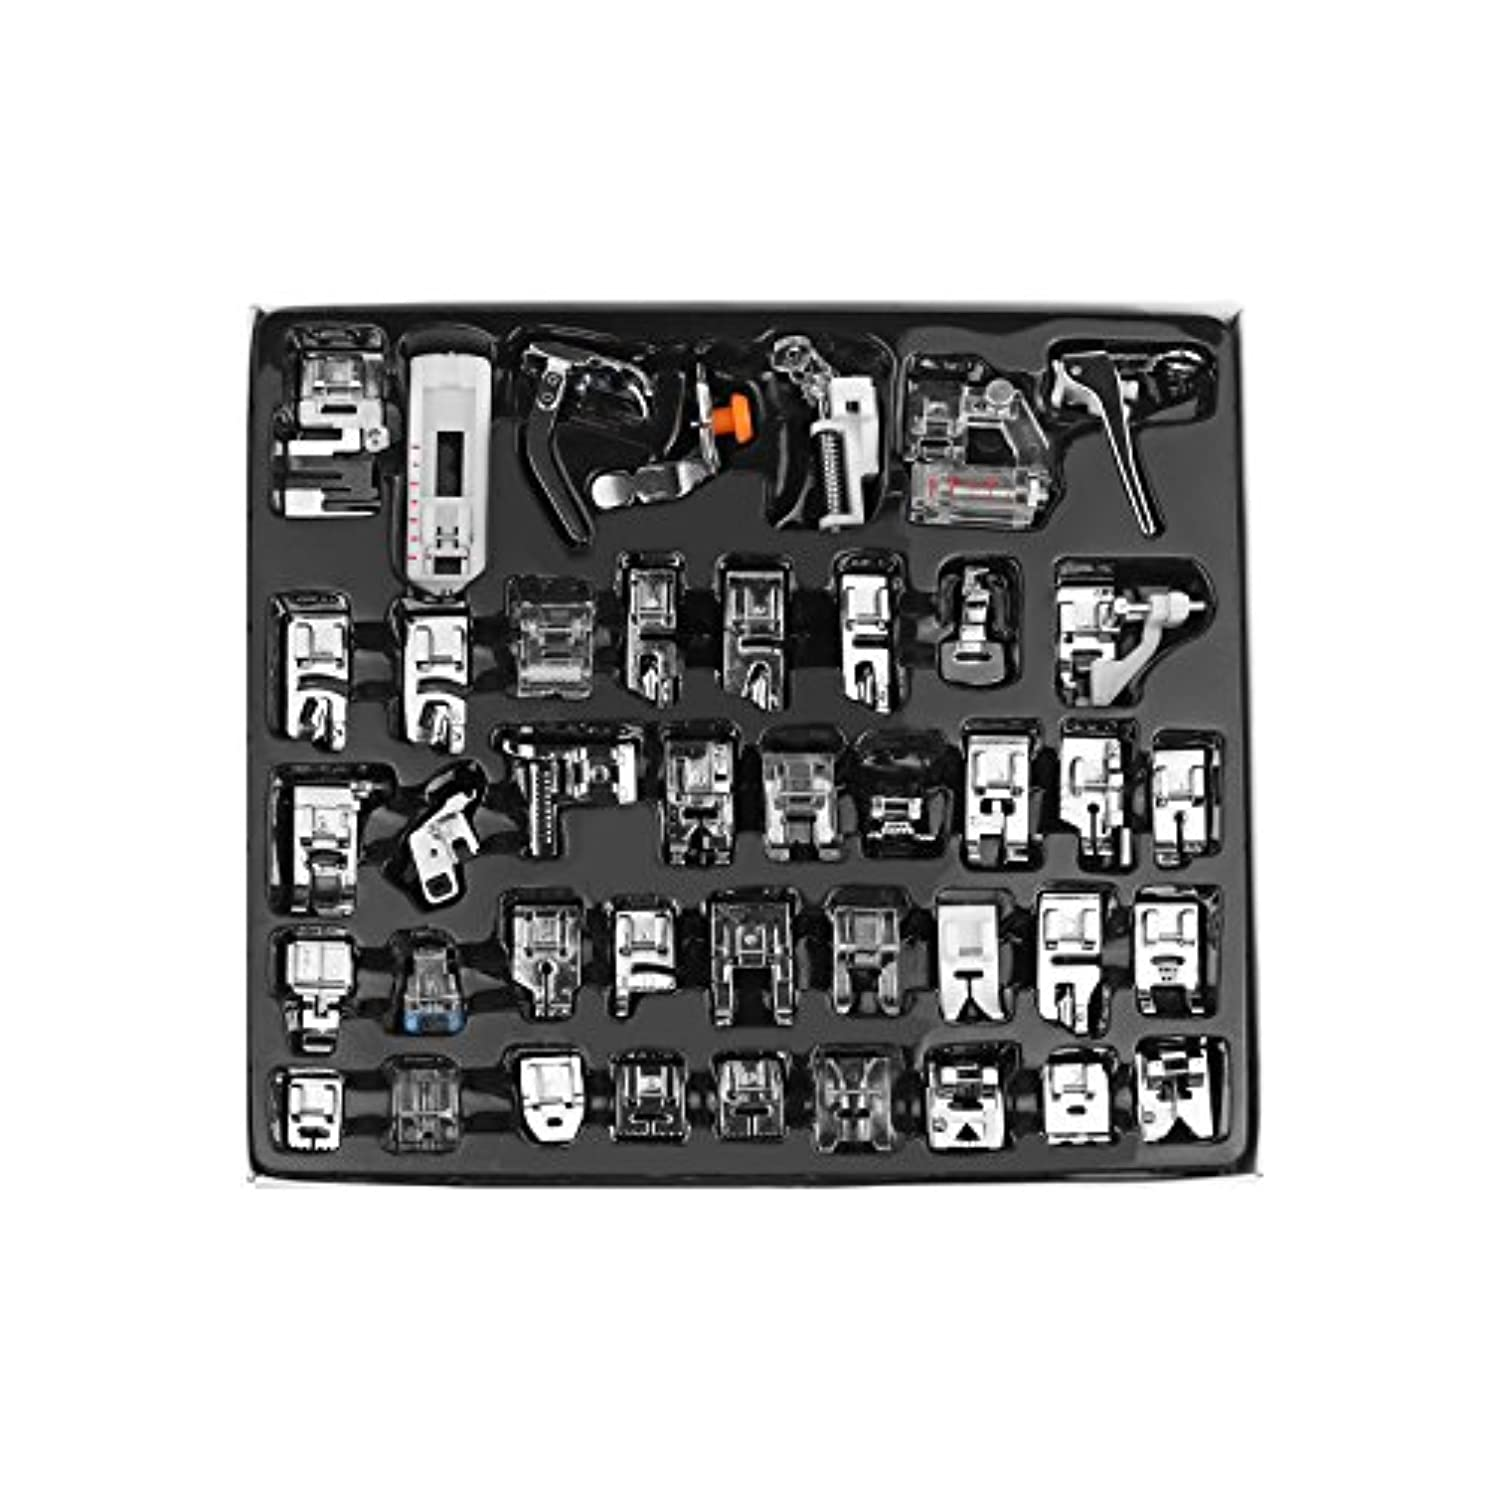 LEMONBEST Professional 42pcs Domestic Sewing Machine Presser Walking Foot Set for Brother, Butterfly, Singer, Janome, Baby Lock etc. Low Shank Sewing Machines